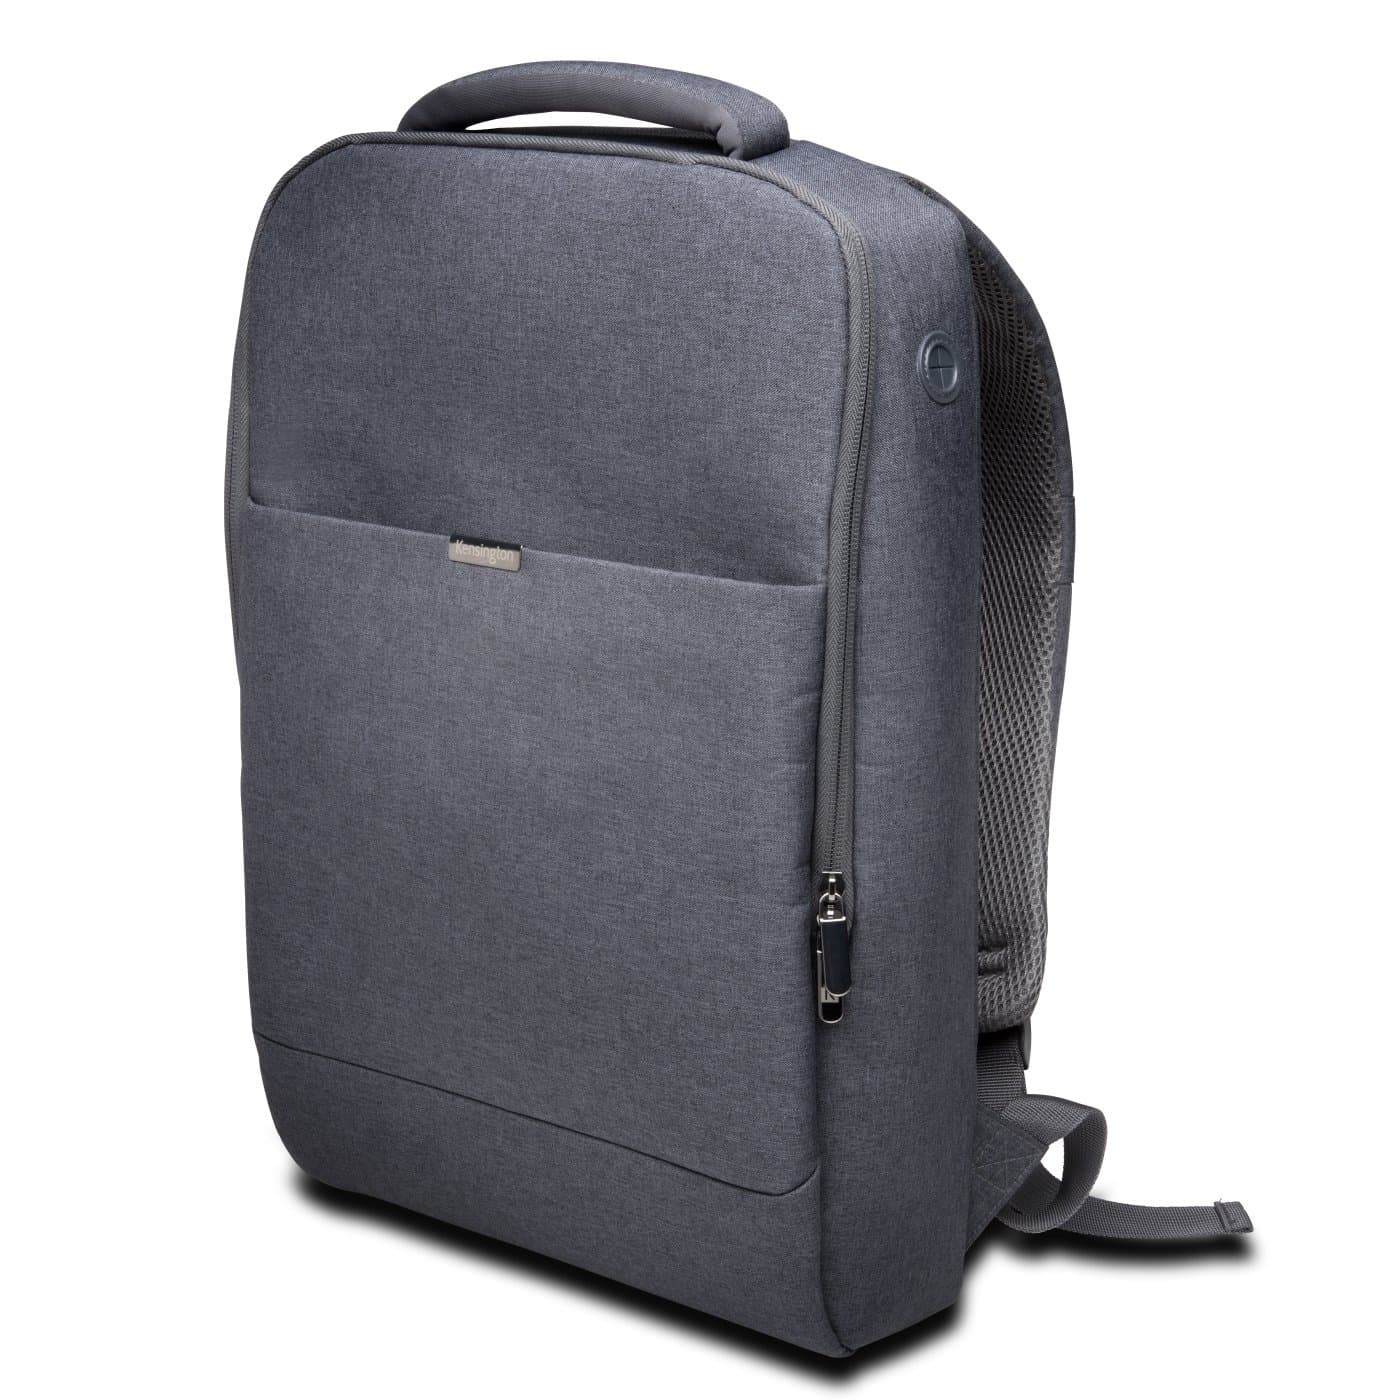 f6d77cc624 Kensington - Products - Laptop Bags - Backpacks - LM150 15.6   Laptop  Backpack